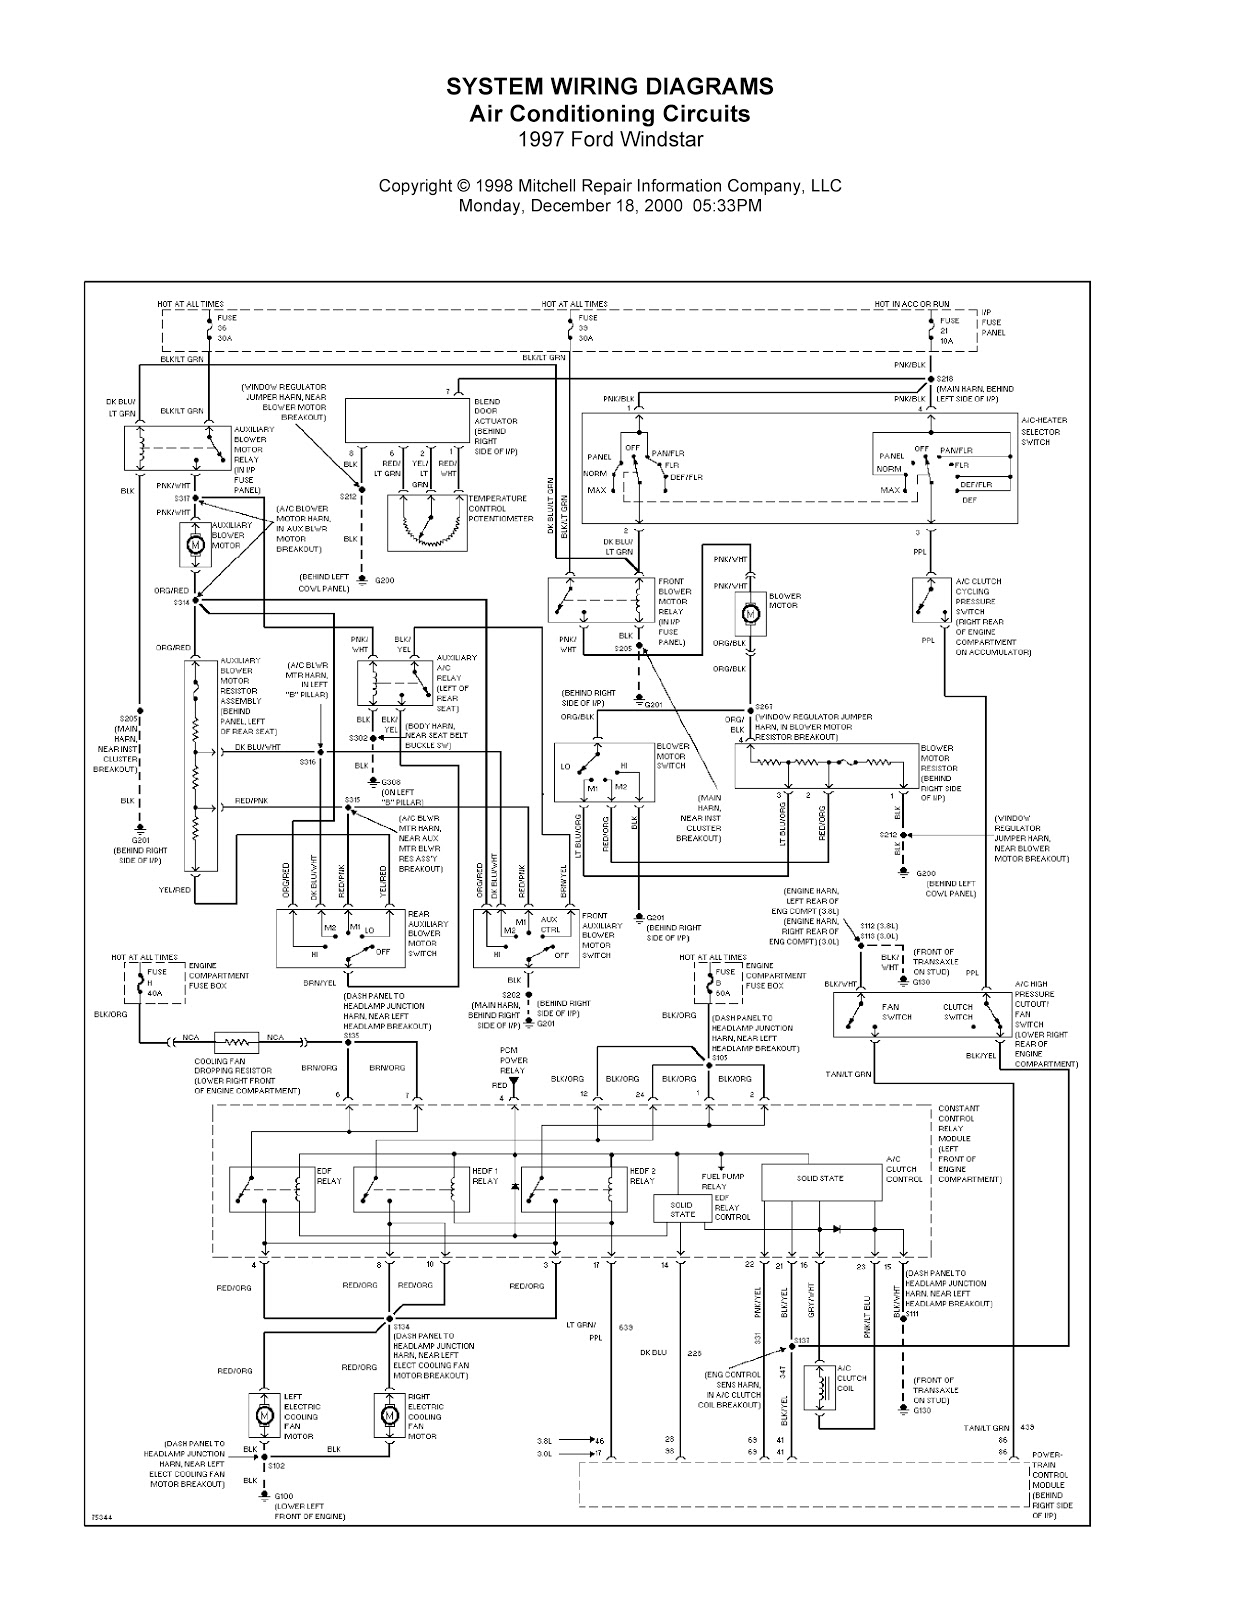 0001 1997 ford windstar complete system wiring diagrams wiring 1999 ford explorer rear wiper wiring diagram at mifinder.co